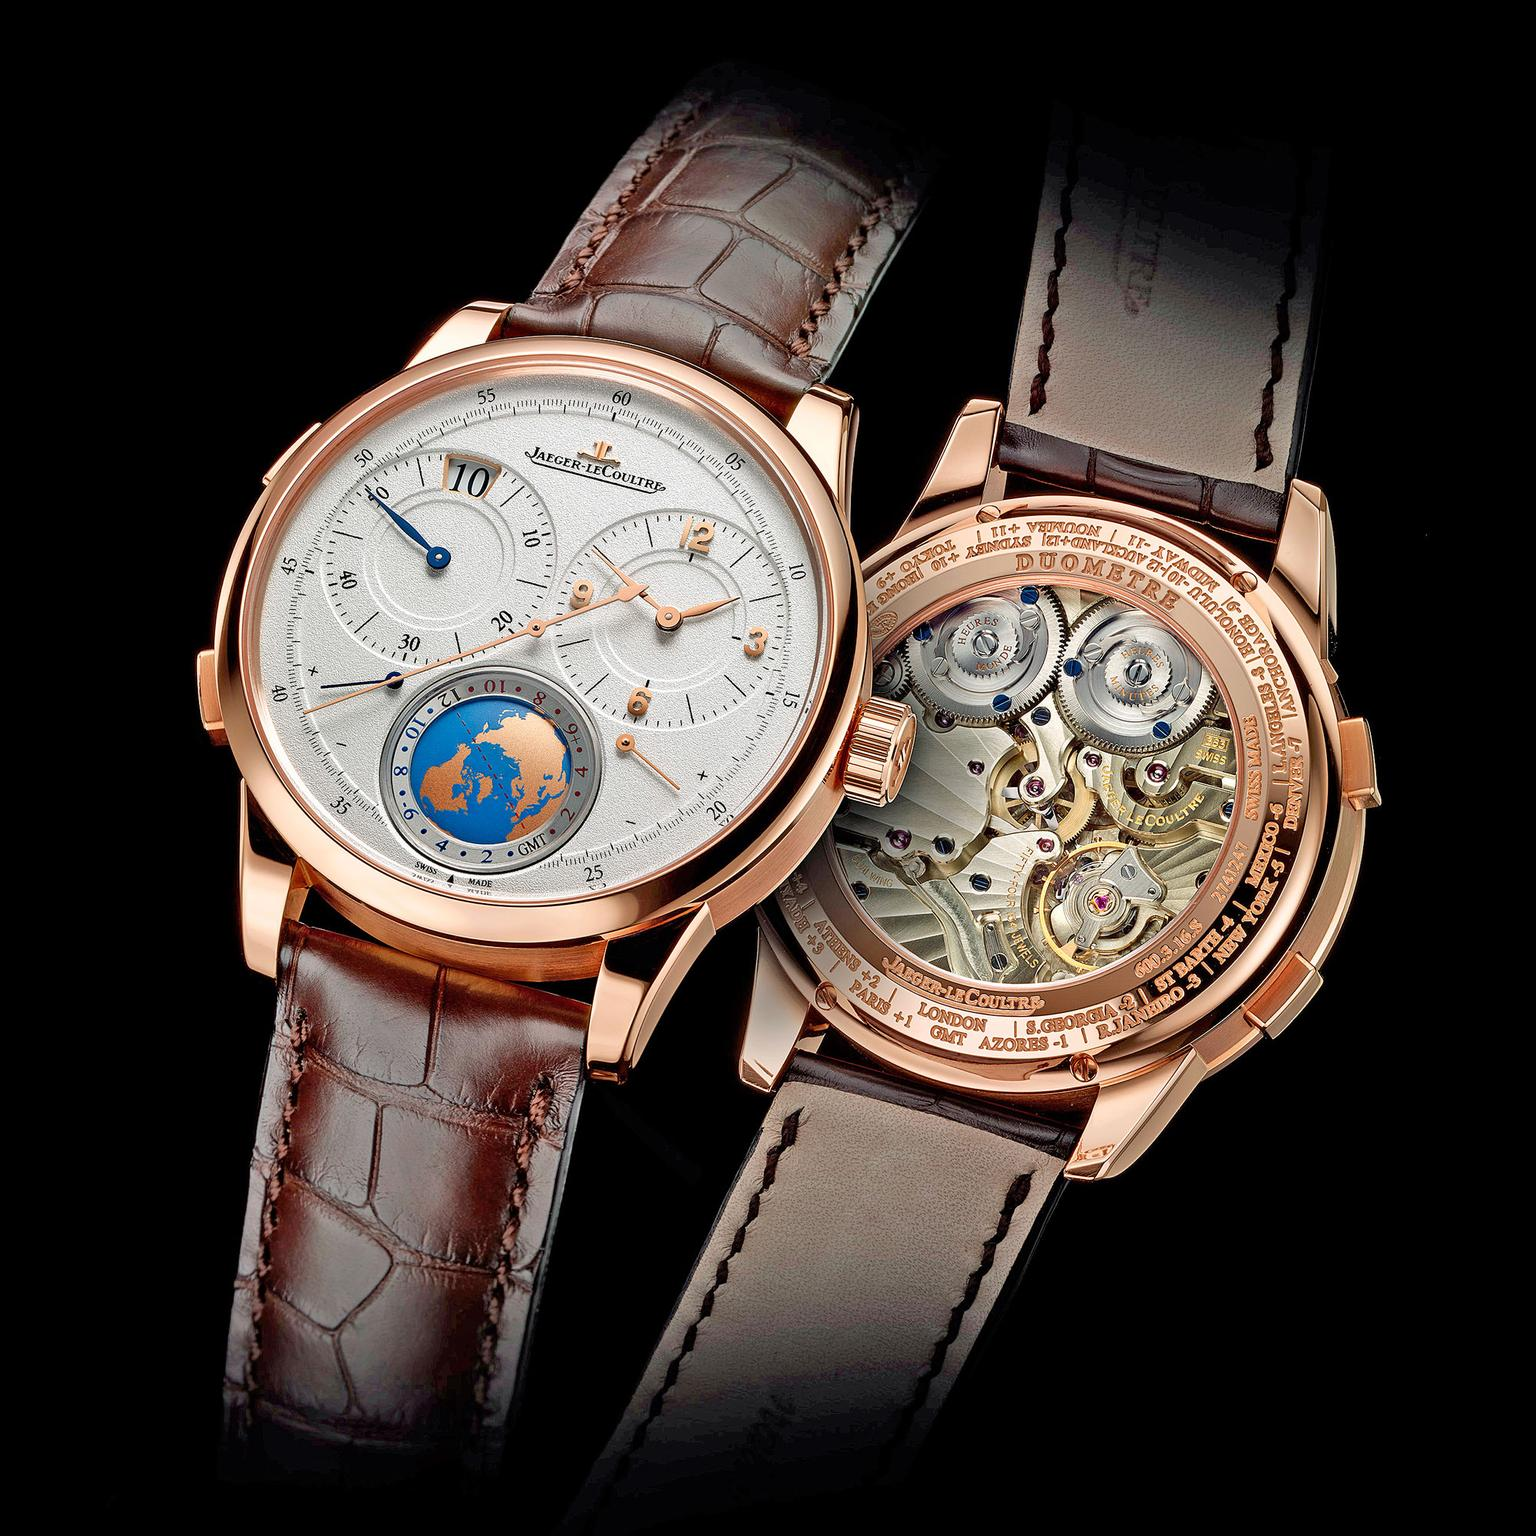 Jaeger-LeCoultre Duometre Unique Travel Time watch